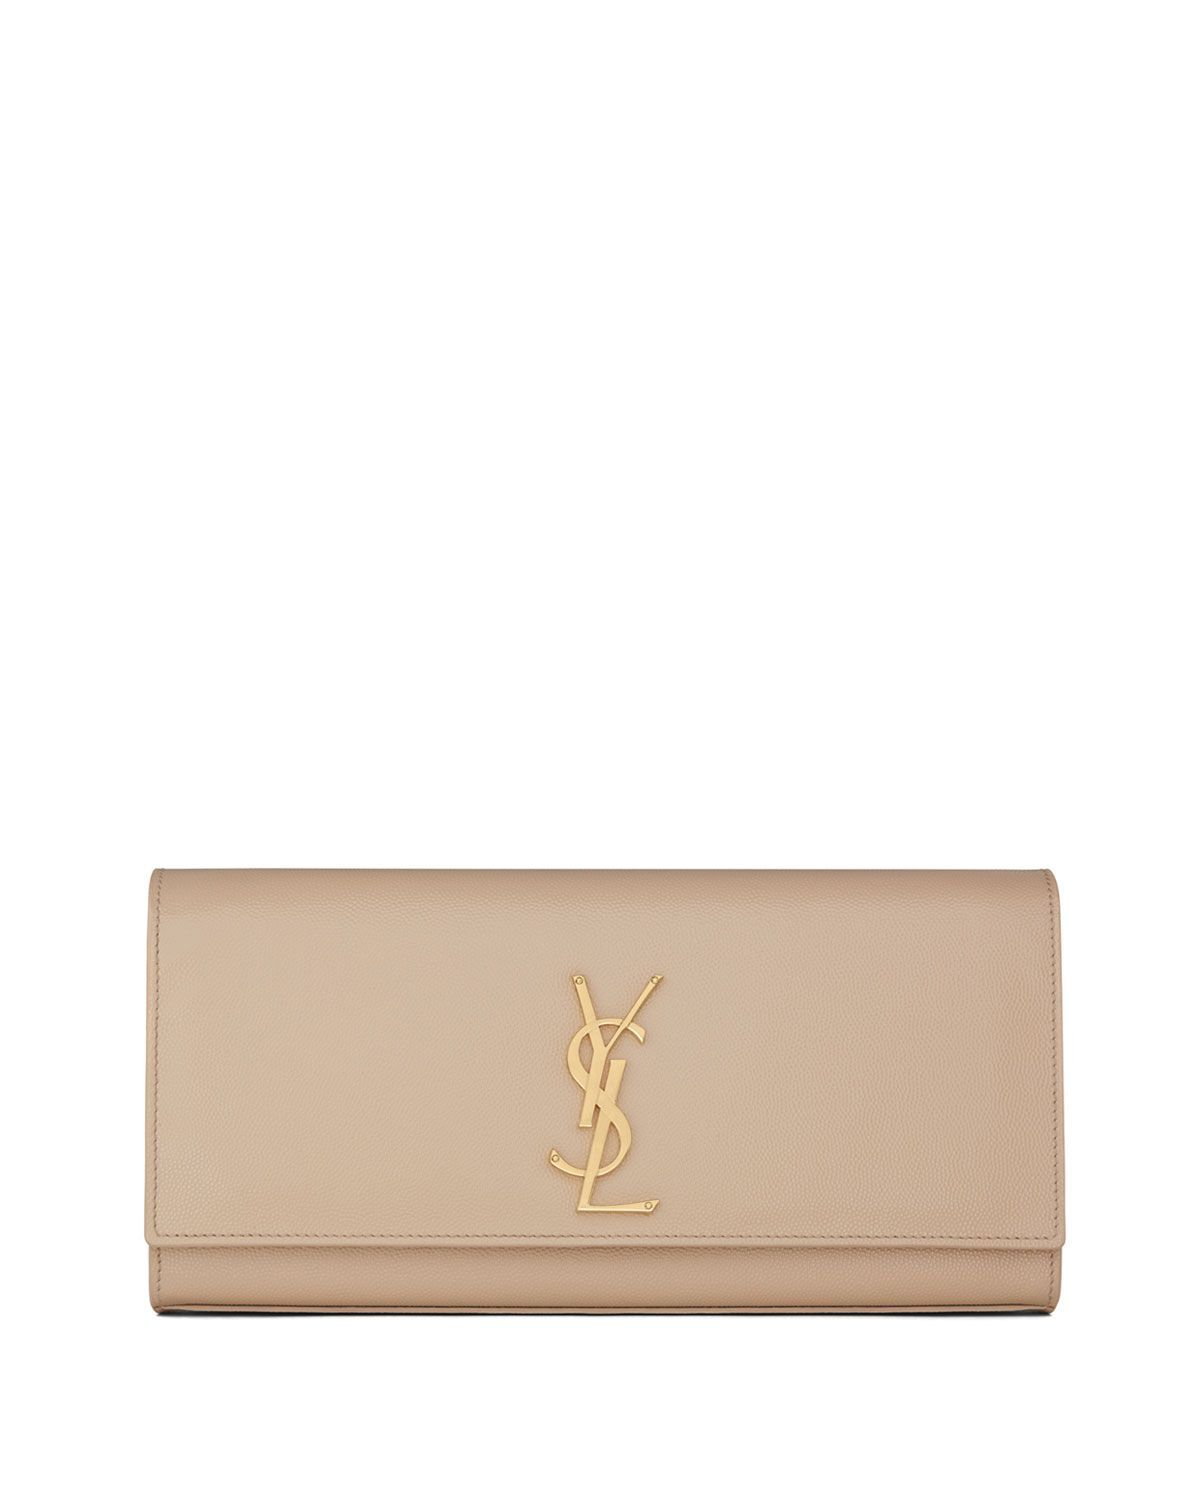 a681470465d2 Saint Laurent Cassandre Calfskin Clutch Bag, Cream  #creamclutchbagsforweddings